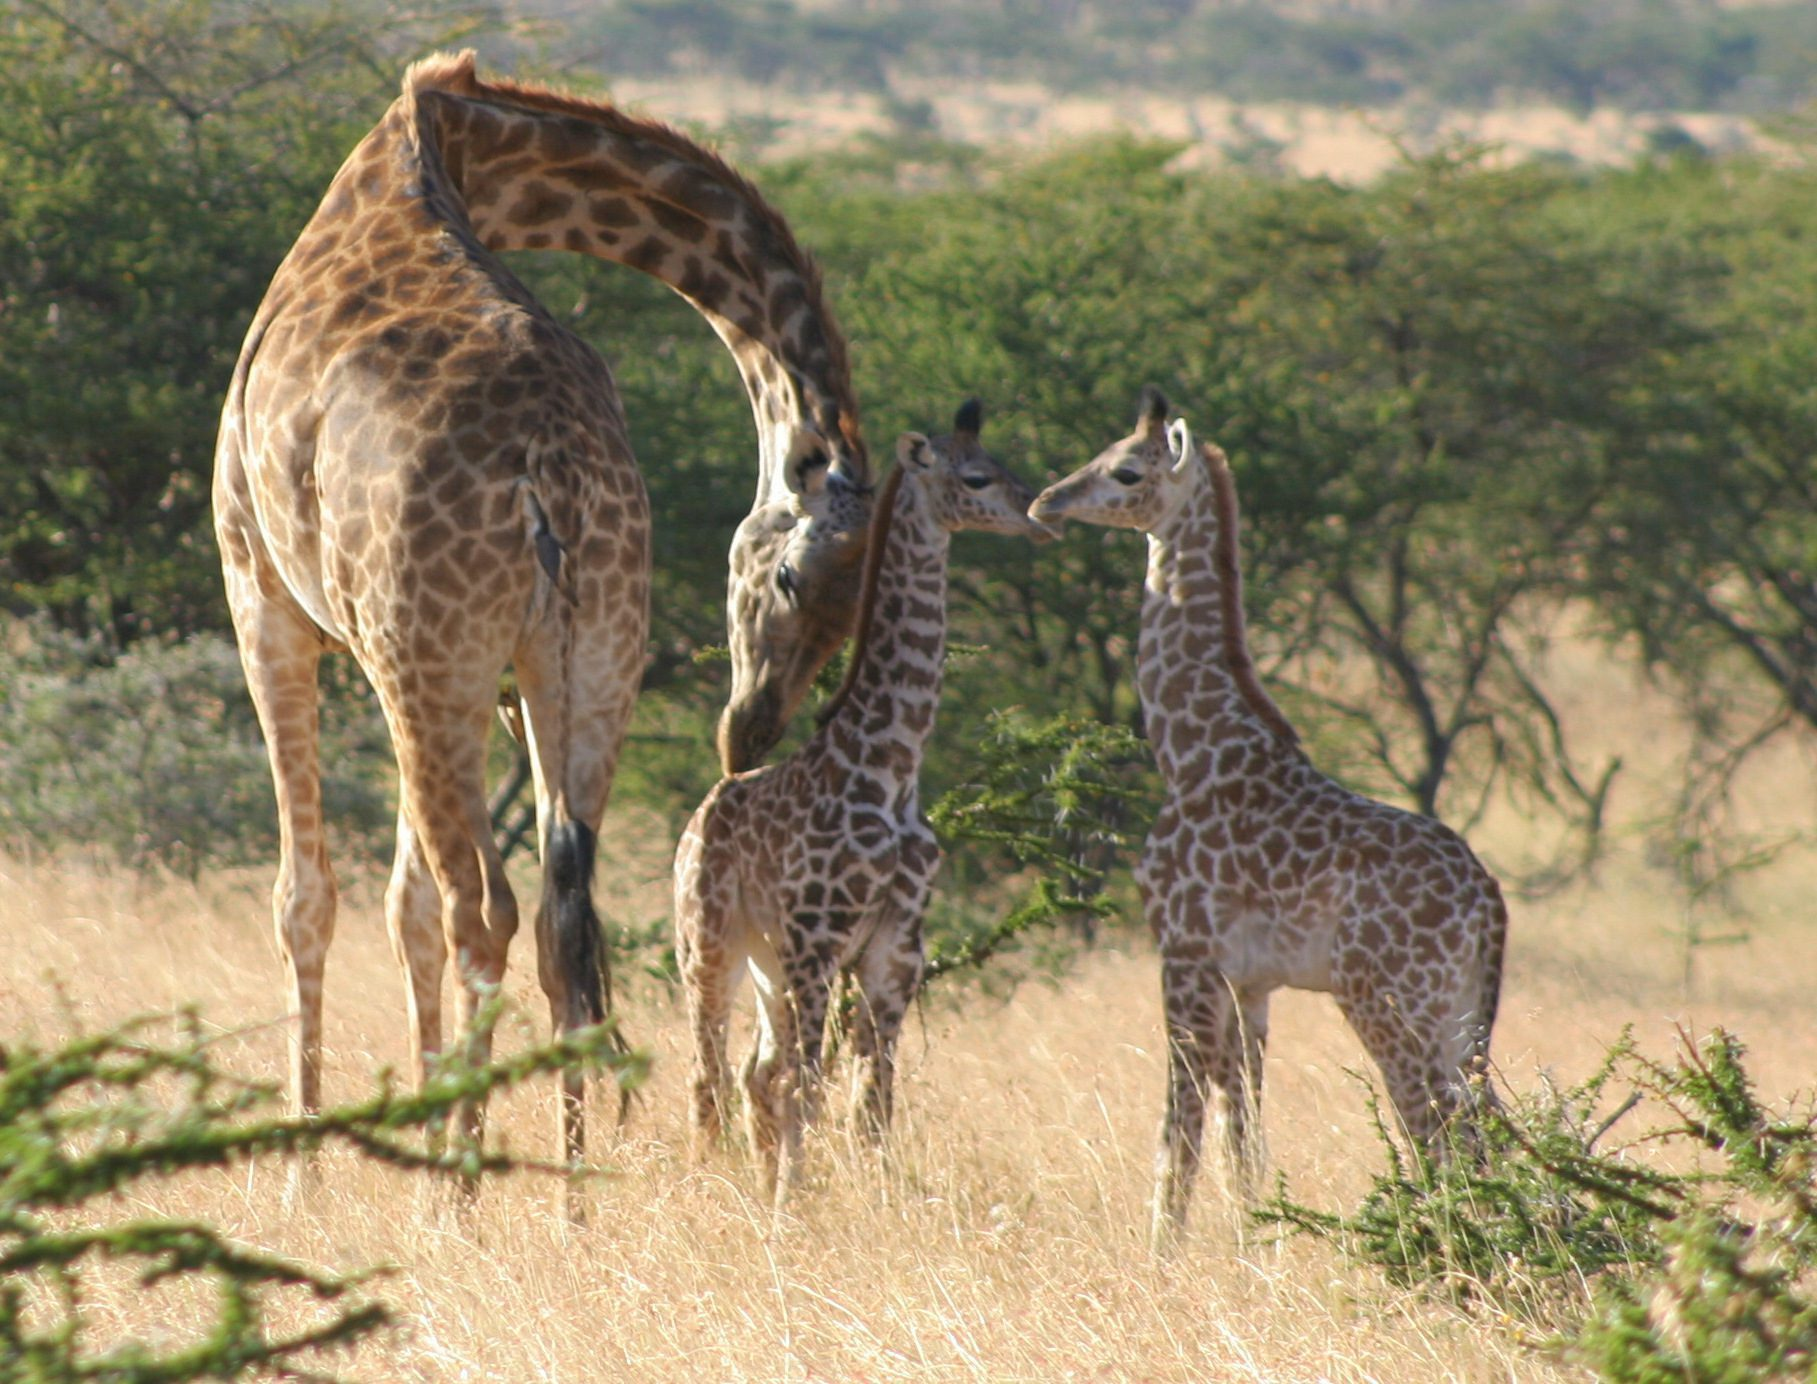 Mama and two baby giraffes